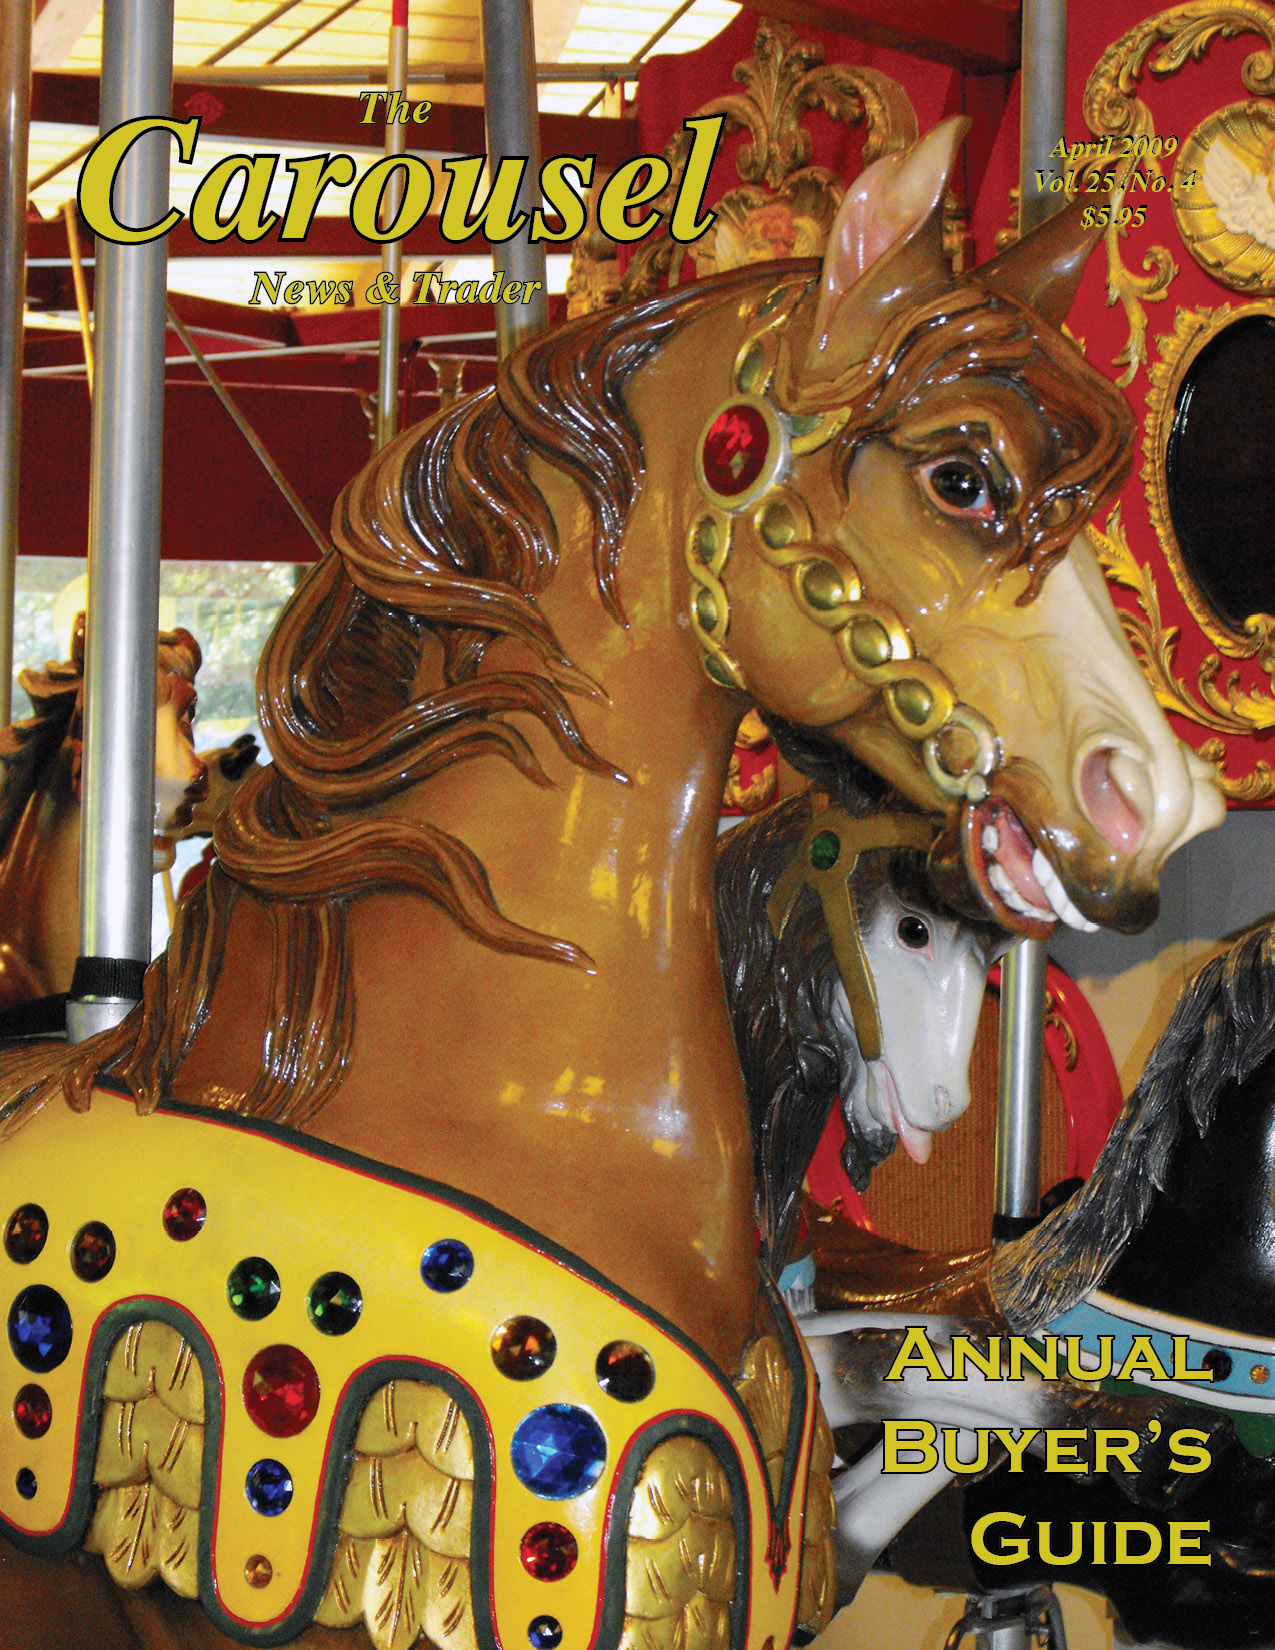 Carousel-news-cover-4-Sanwich-Mass-Heritage-Museum-Looff-carousel-April-2009